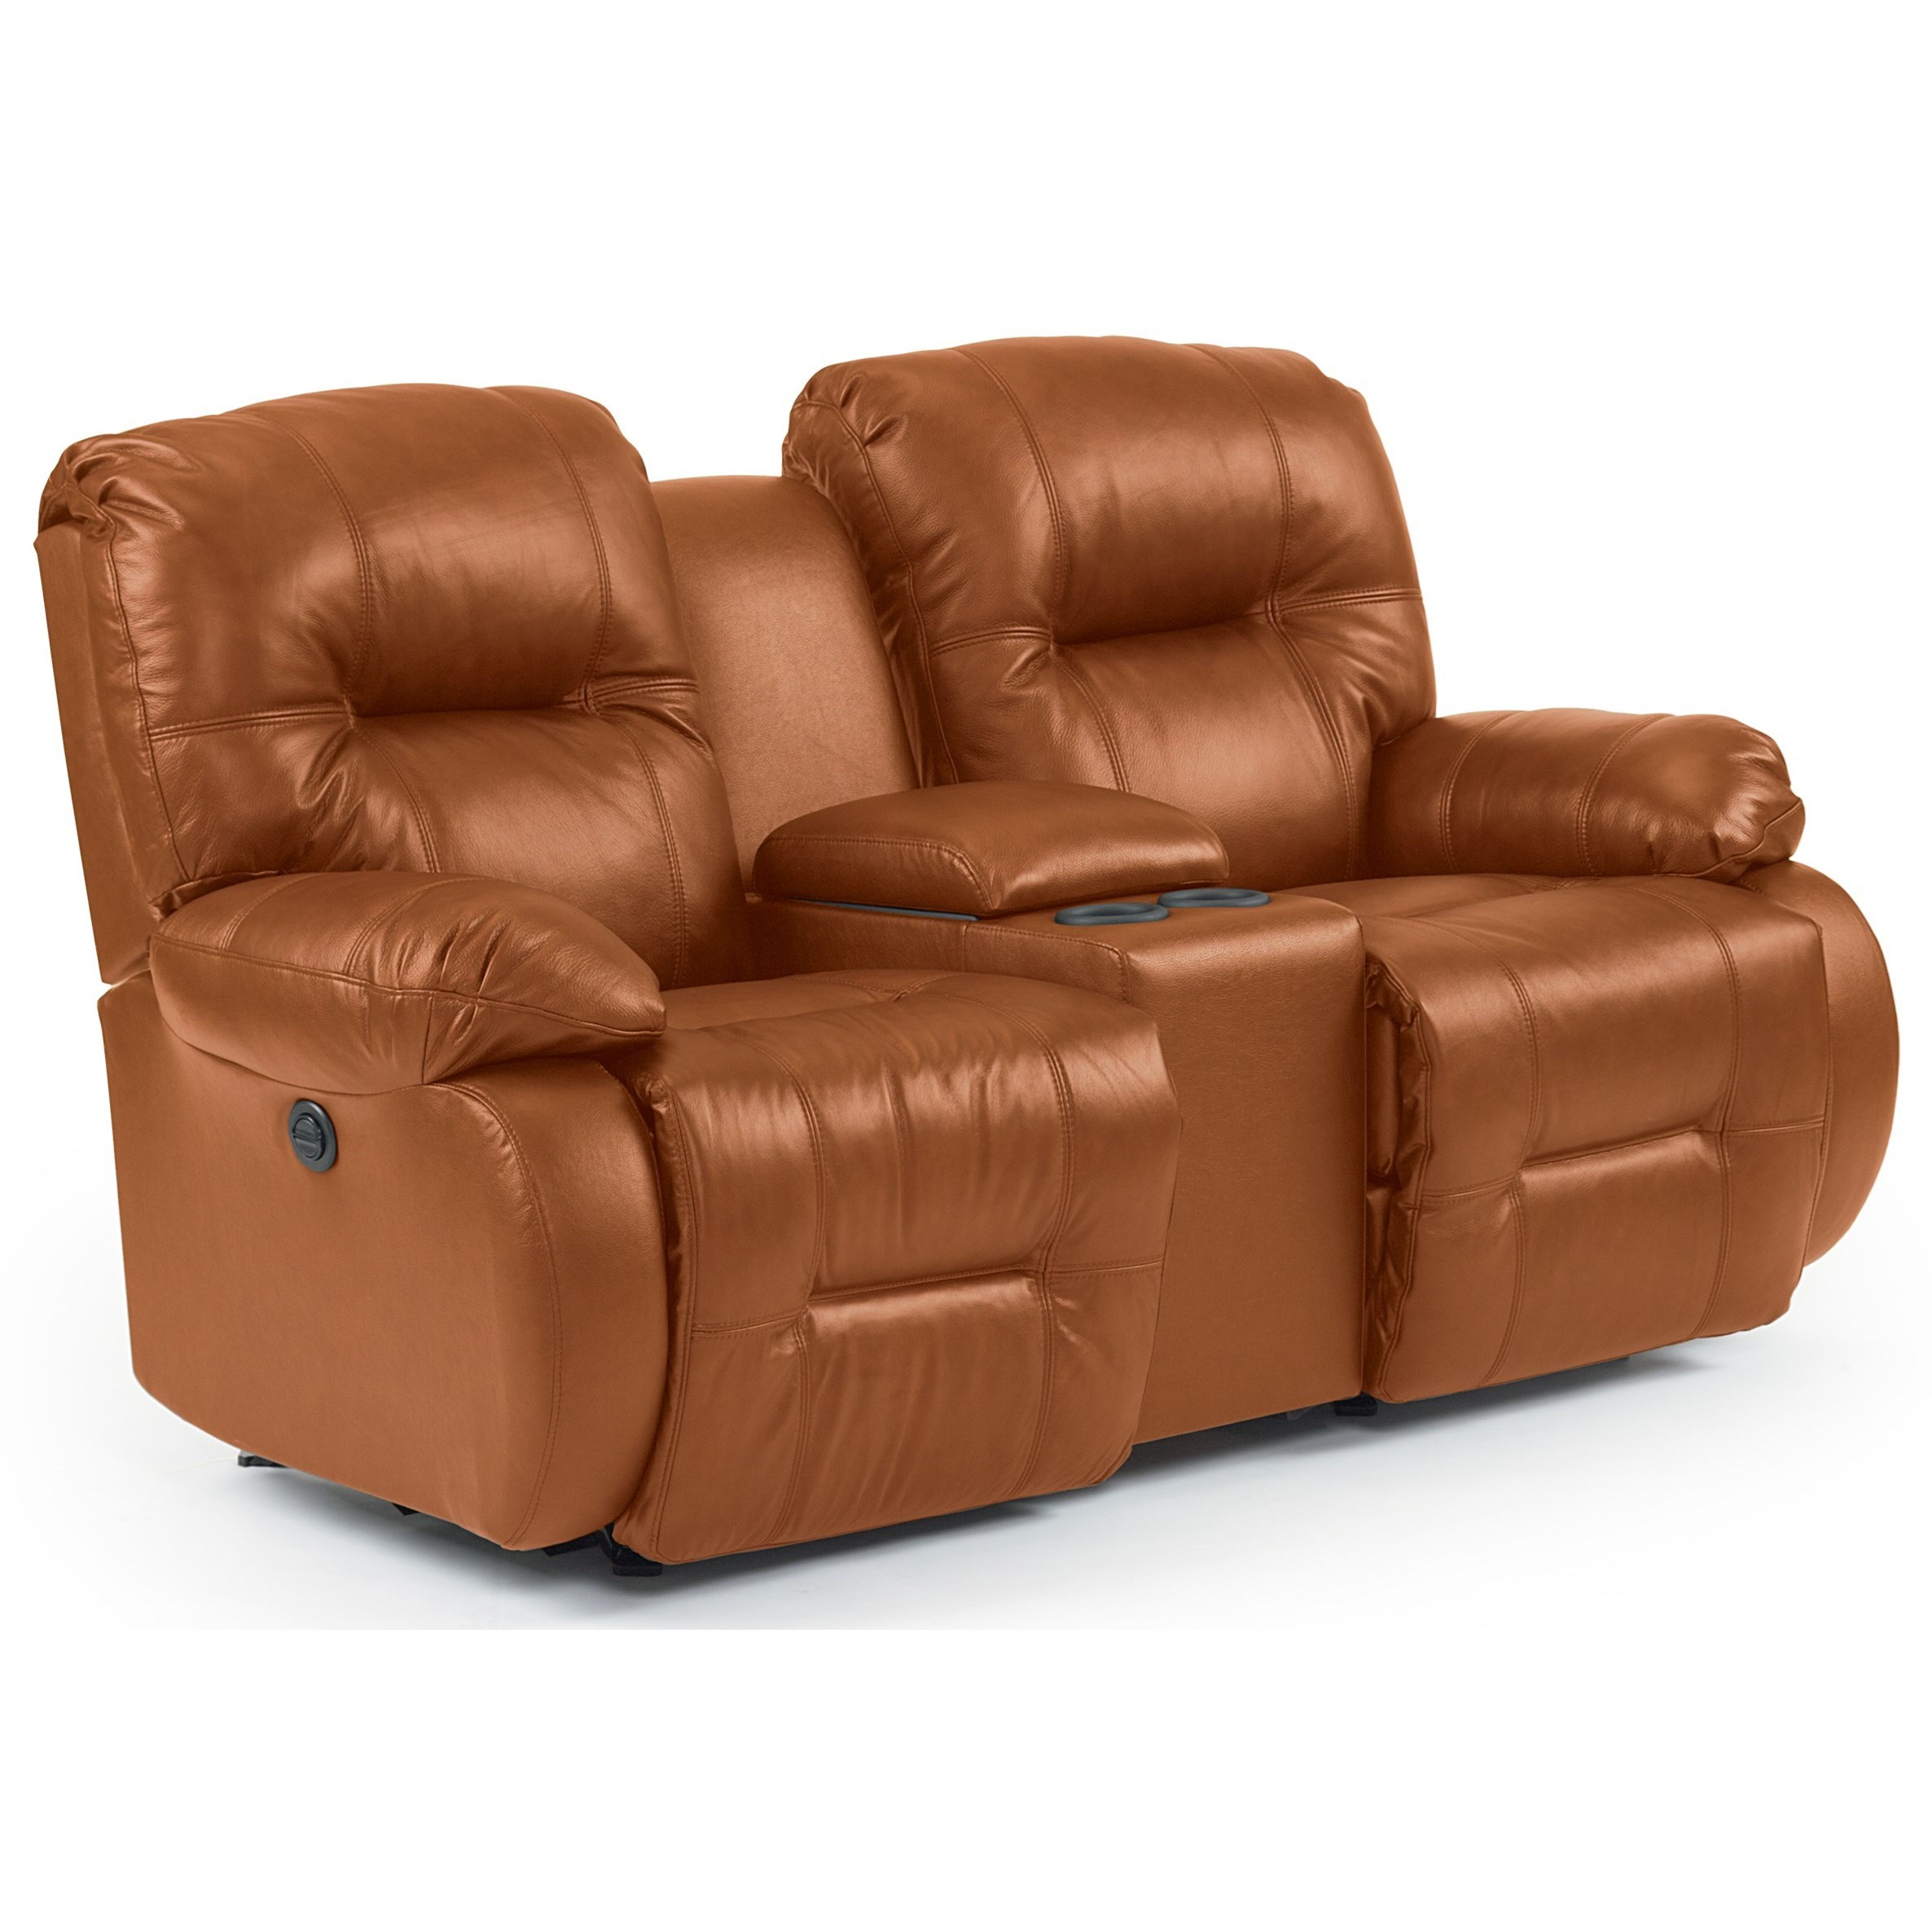 Brinley 2 Power Rocking Reclining Console Loveseat by Best Home Furnishings at Best Home Furnishings